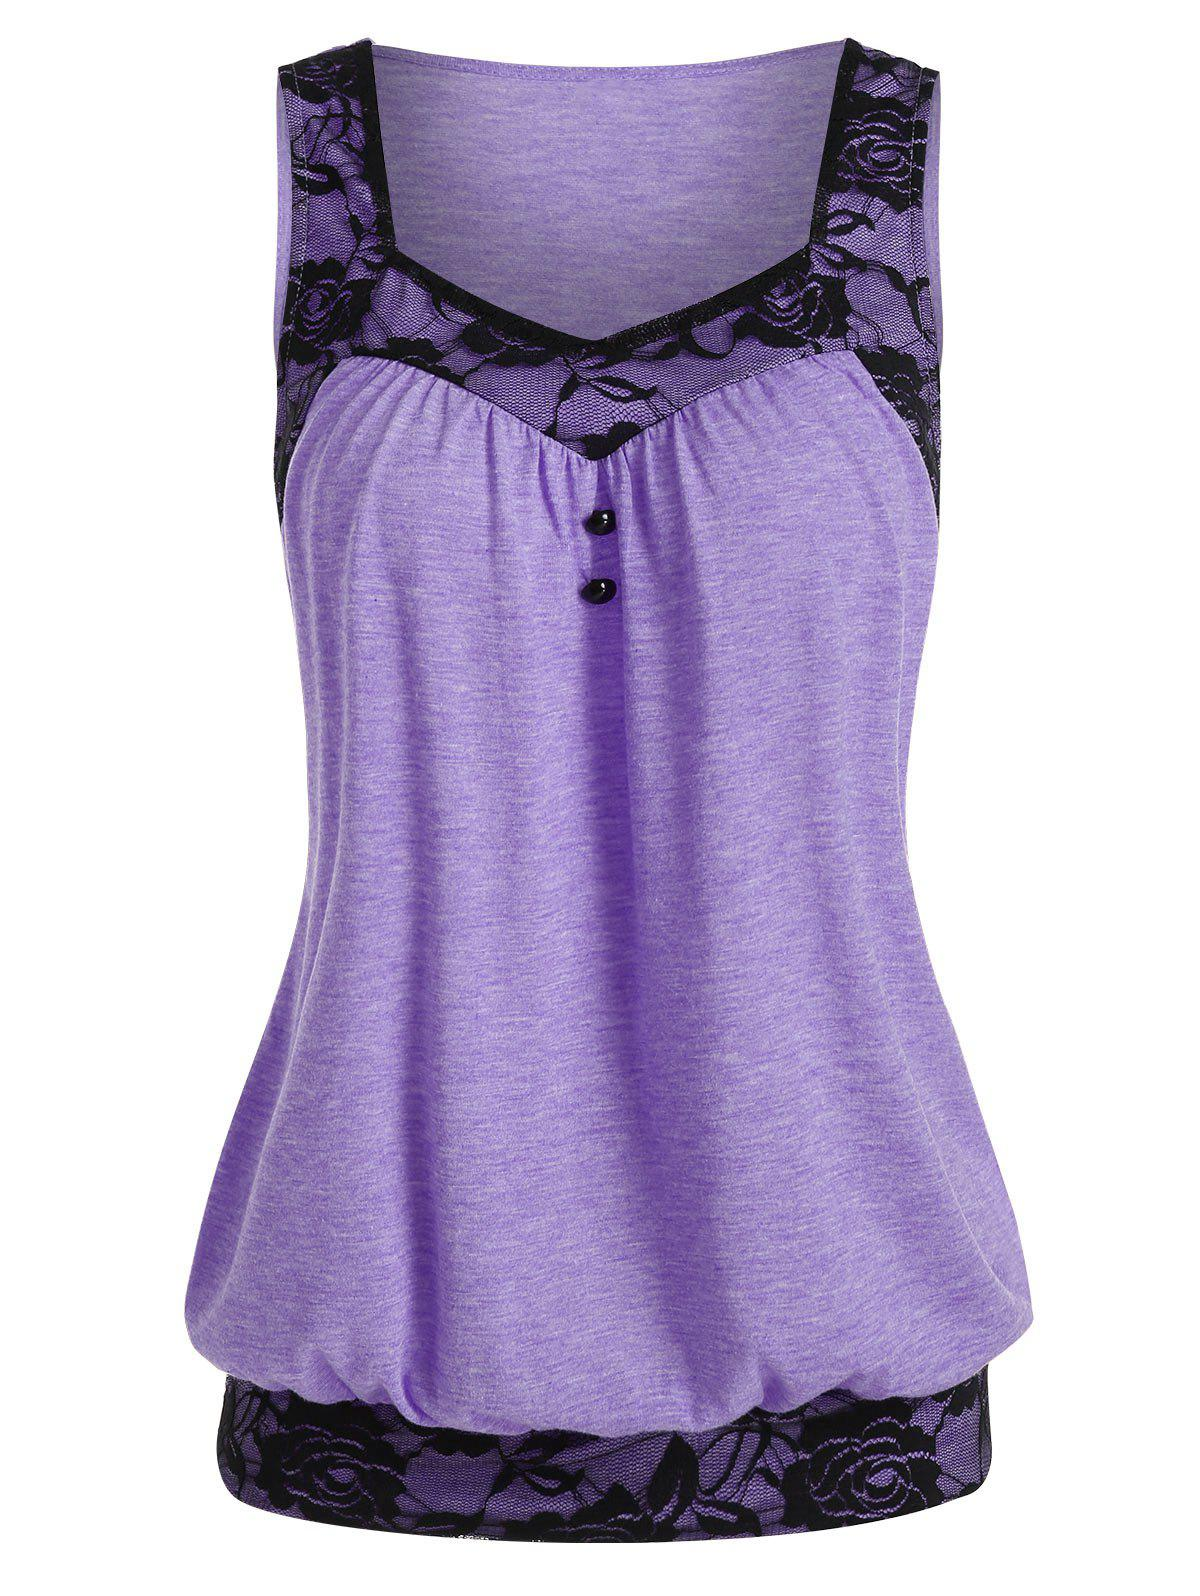 Lace Insert Mock Button Blouson Tank Top - MAUVE 2XL